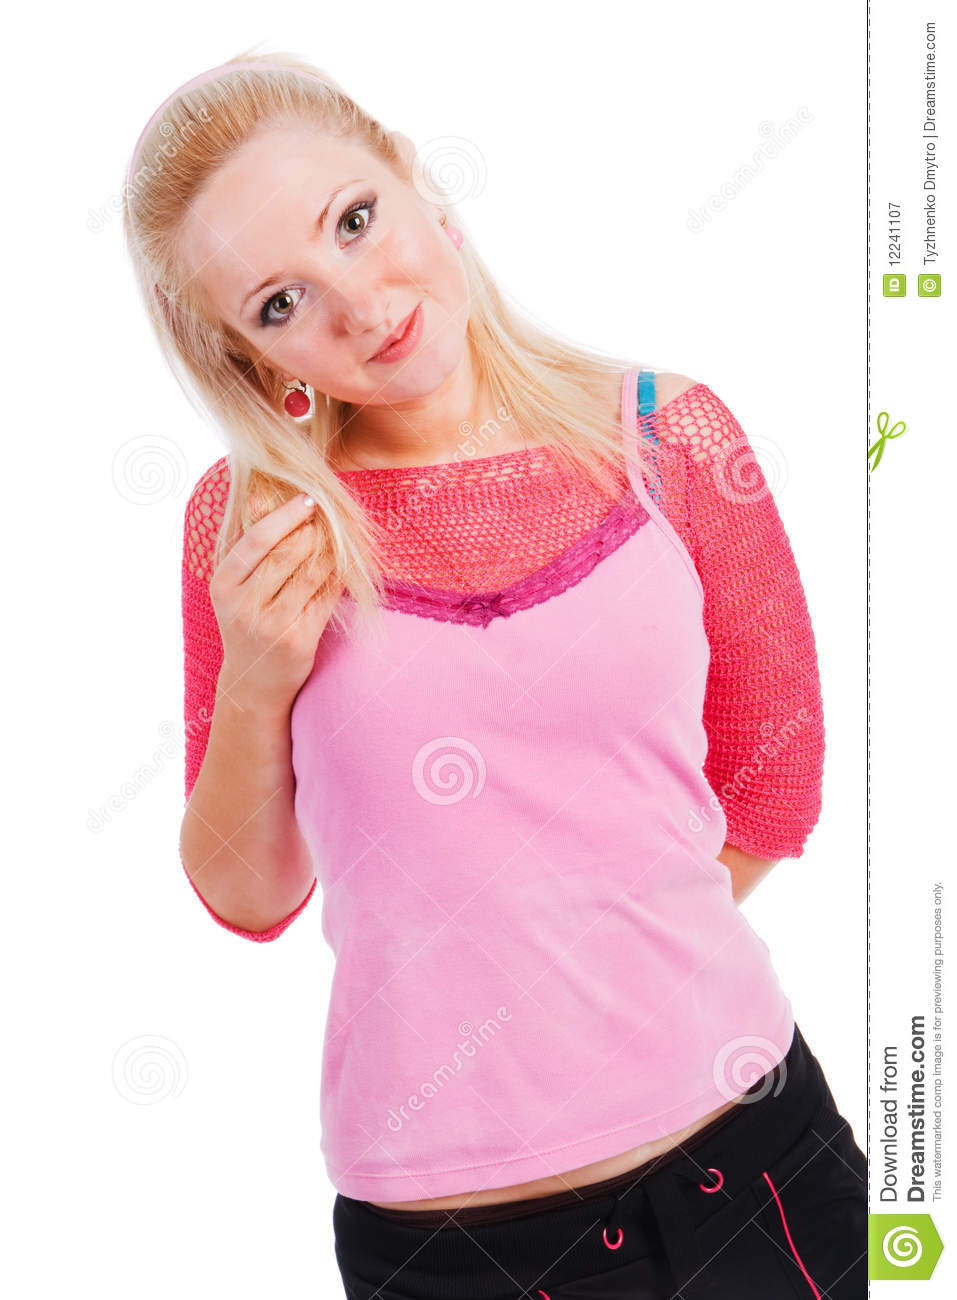 Charming young girl in pink blouse royalty free stock photography image 12241107 - Charming teenage girls image ...